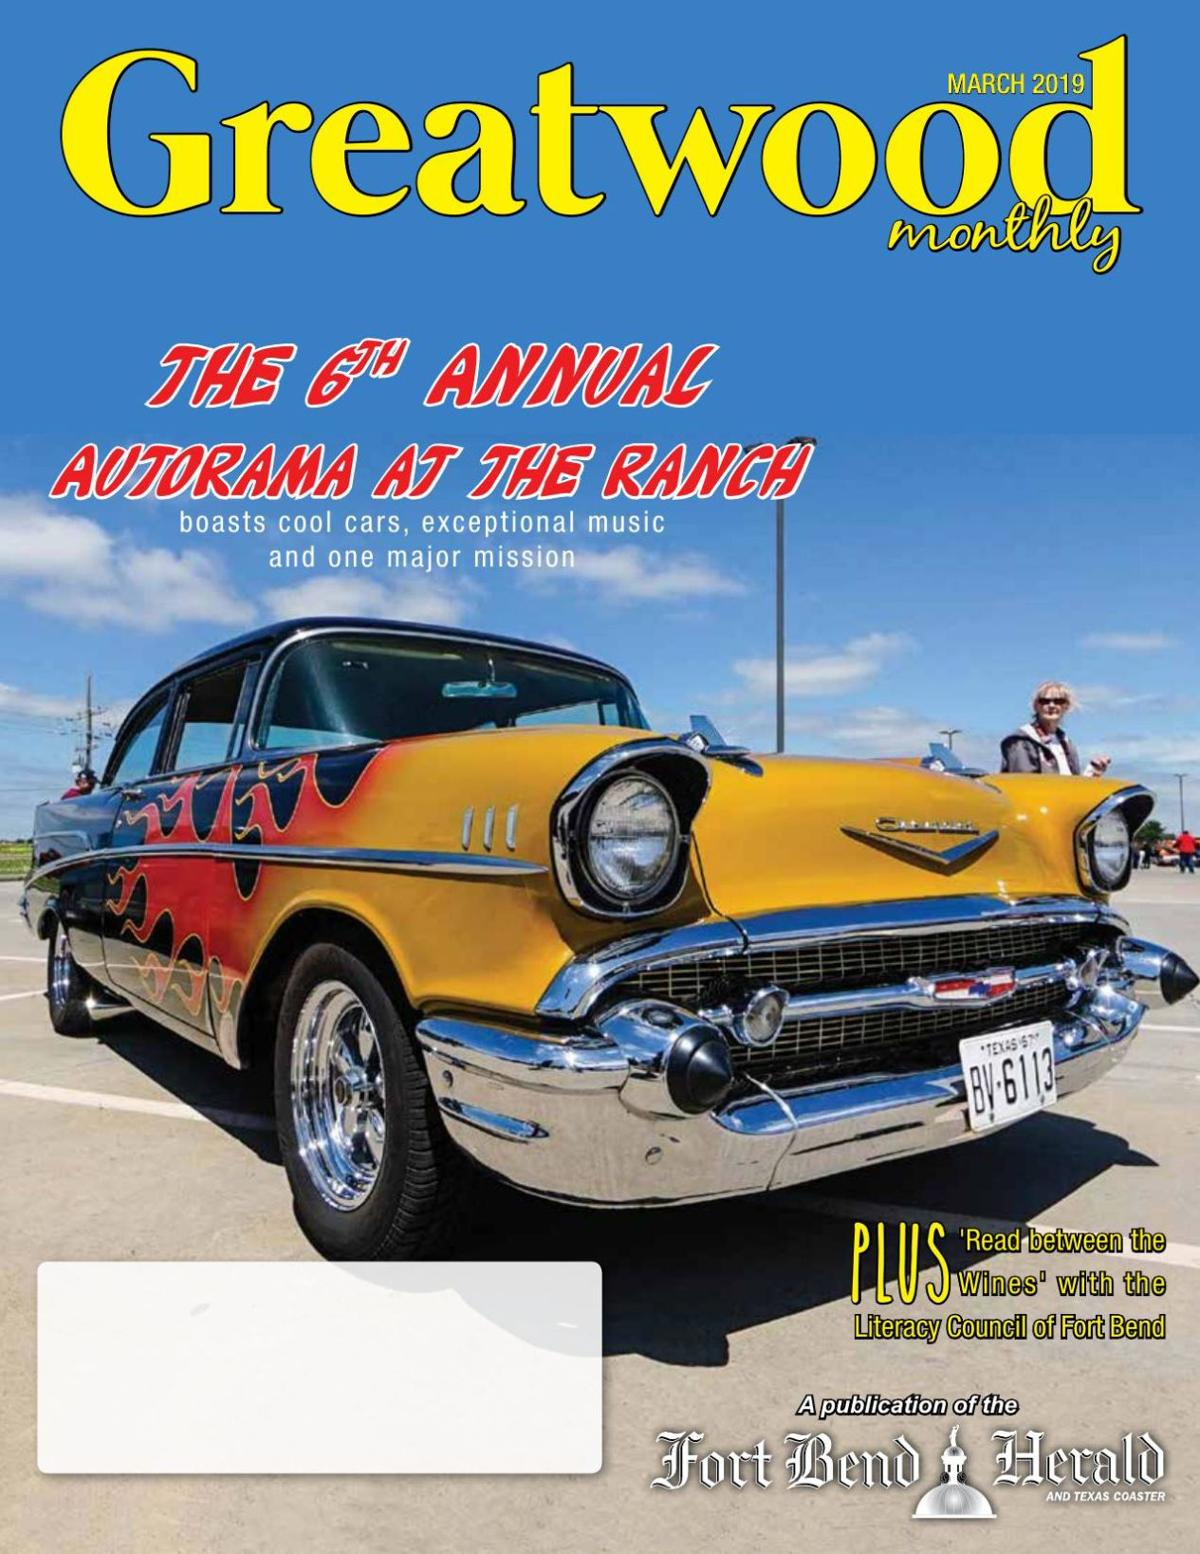 Greatwood Monthly: March 2019